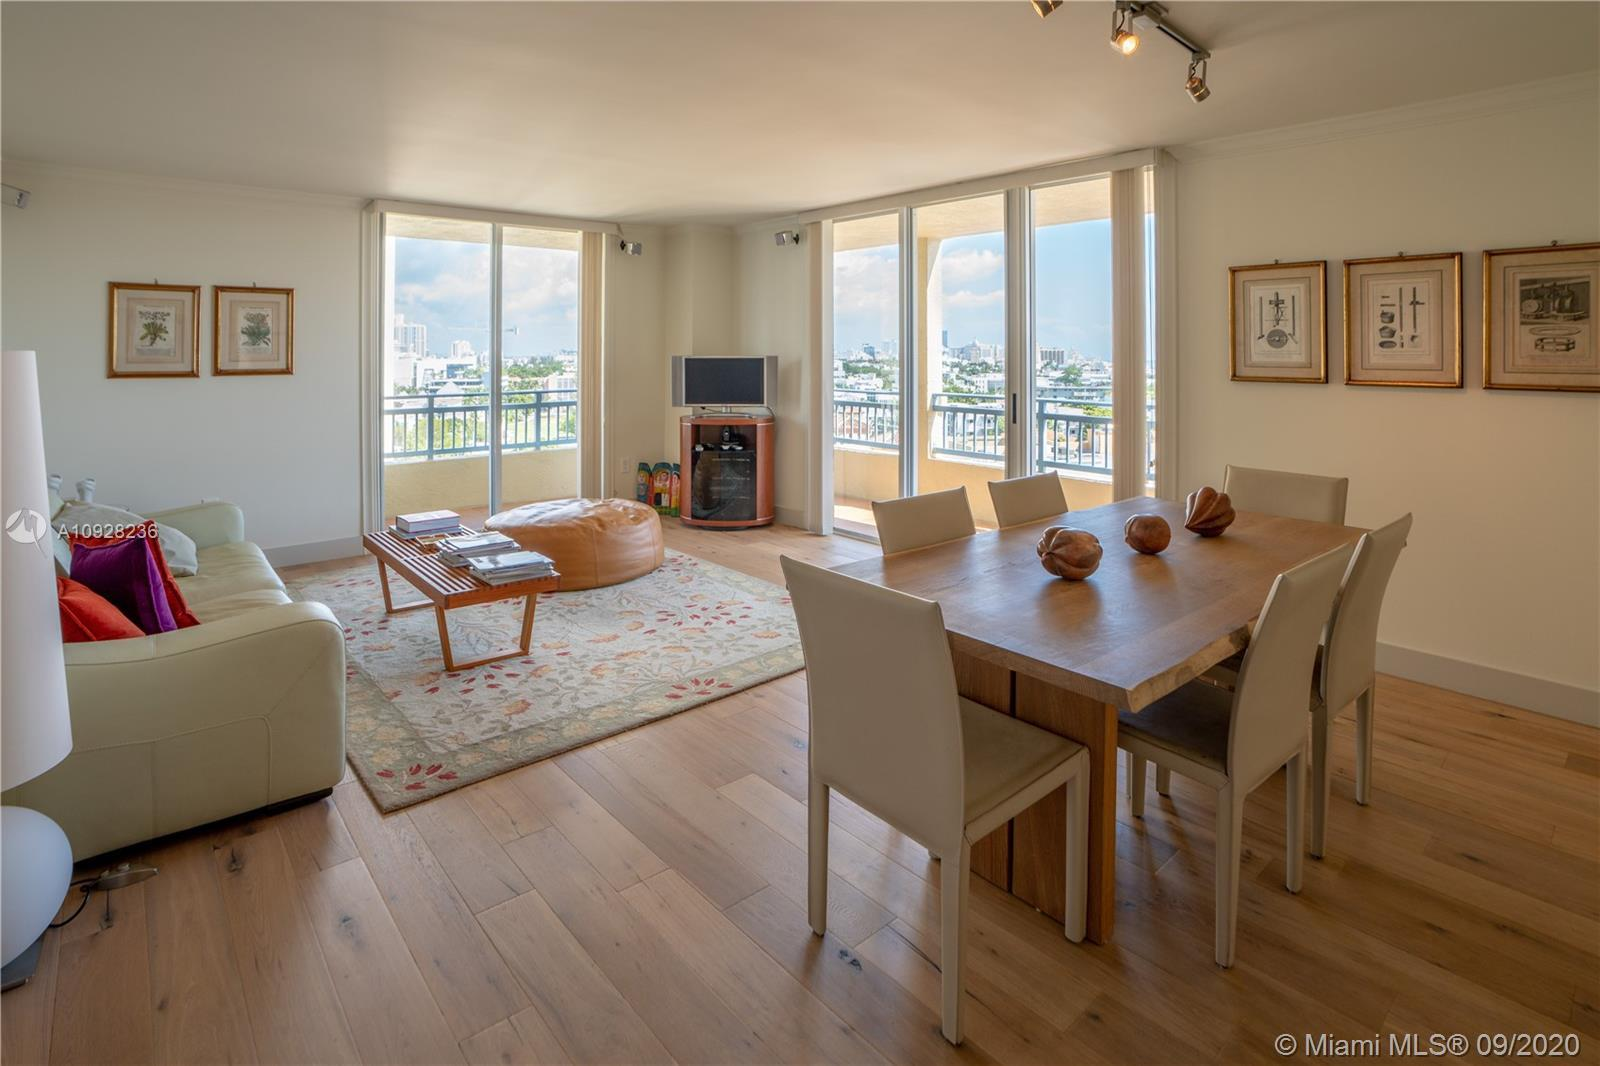 Beautifully remodeled two-bedroom unit with spectacular city, ocean and bay views. This corner unit